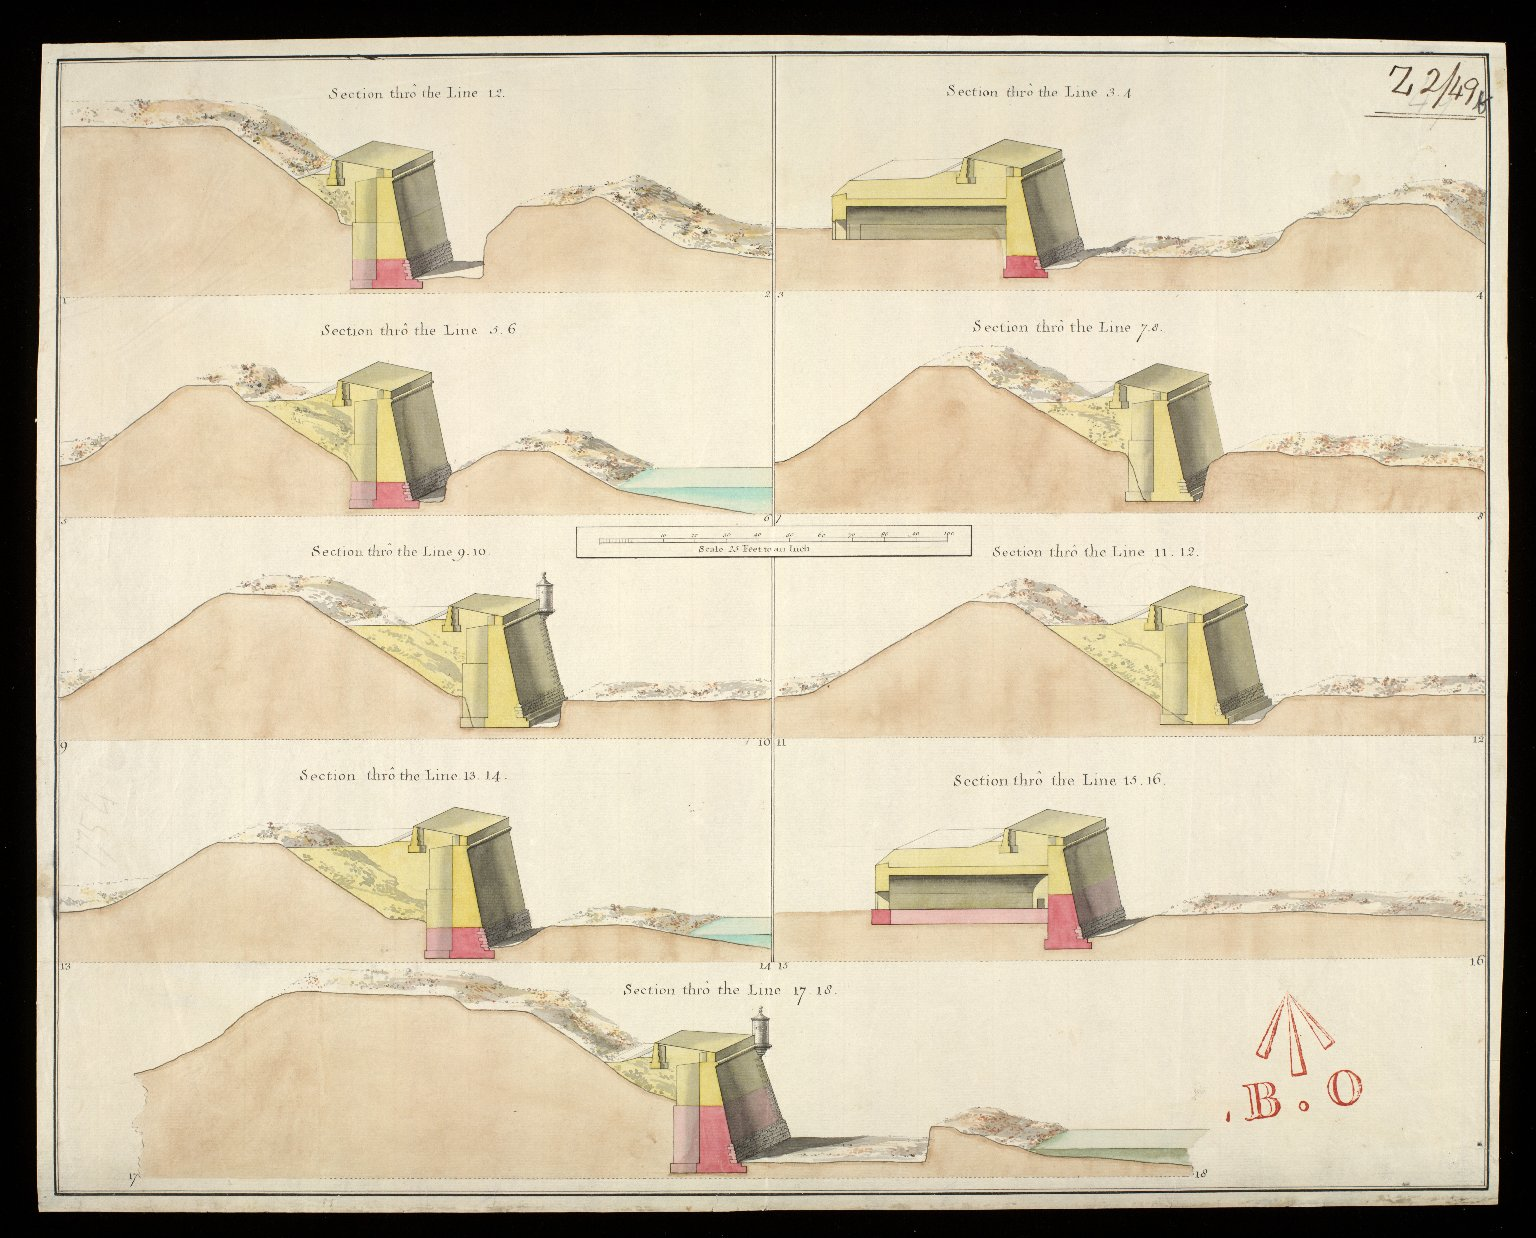 [Plan of Fort George 1754]: section thro' the line 1.2; section thro' the line 3.4; section thro' the line 5.6; section thro' the line 7.8; section thro' the line 9.10; ... [1 of 1]